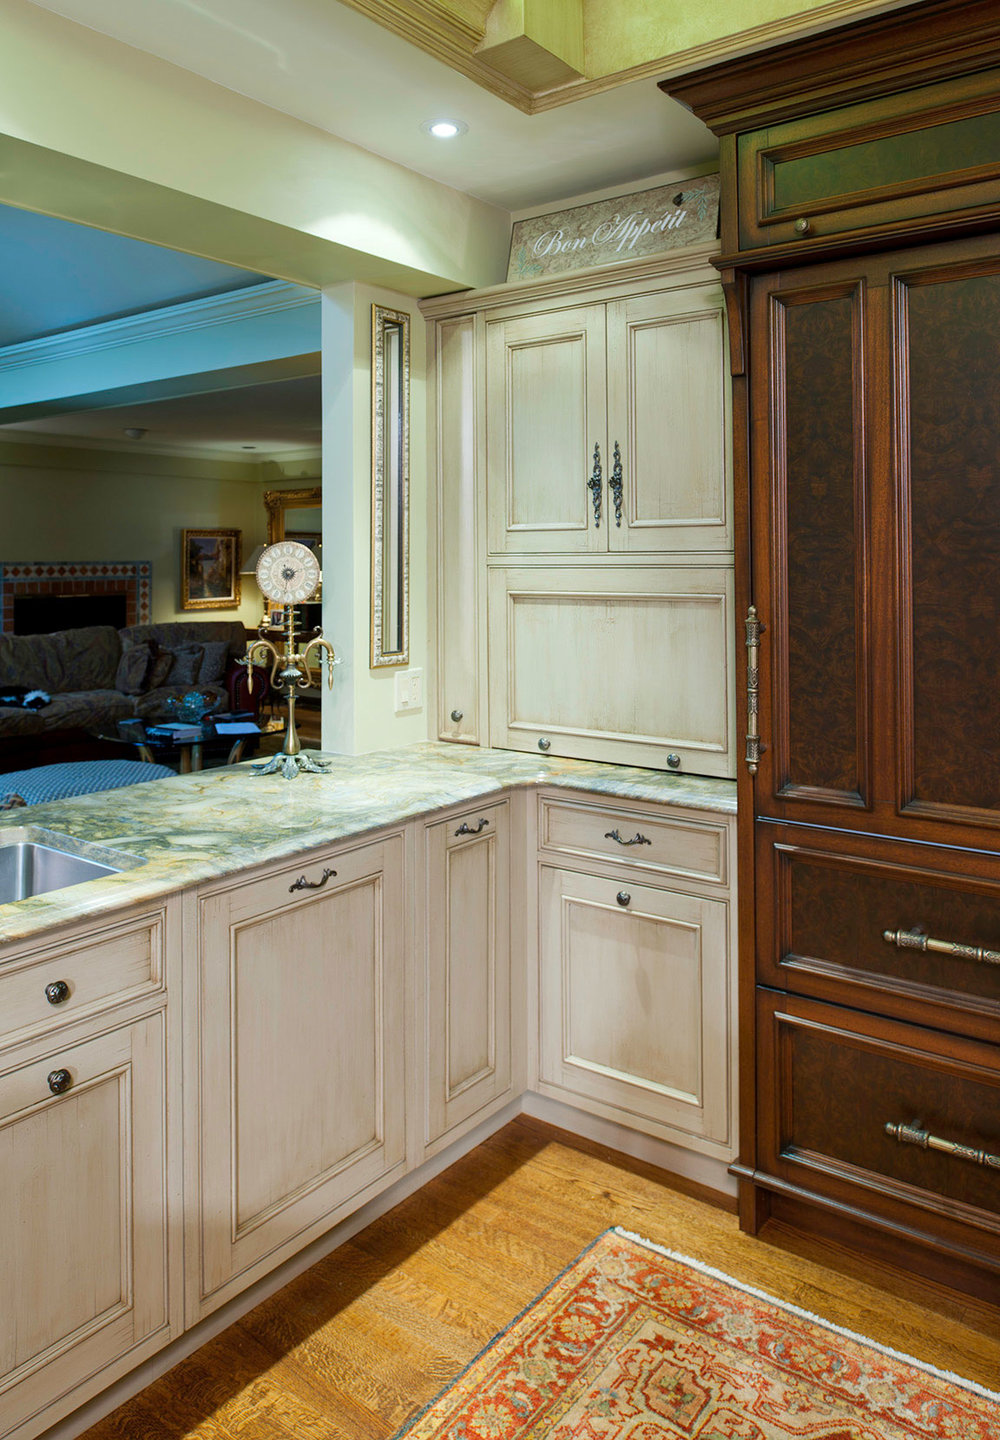 kitchen_bath_Concepts_pittsburgh_traditional_home5_7.jpg